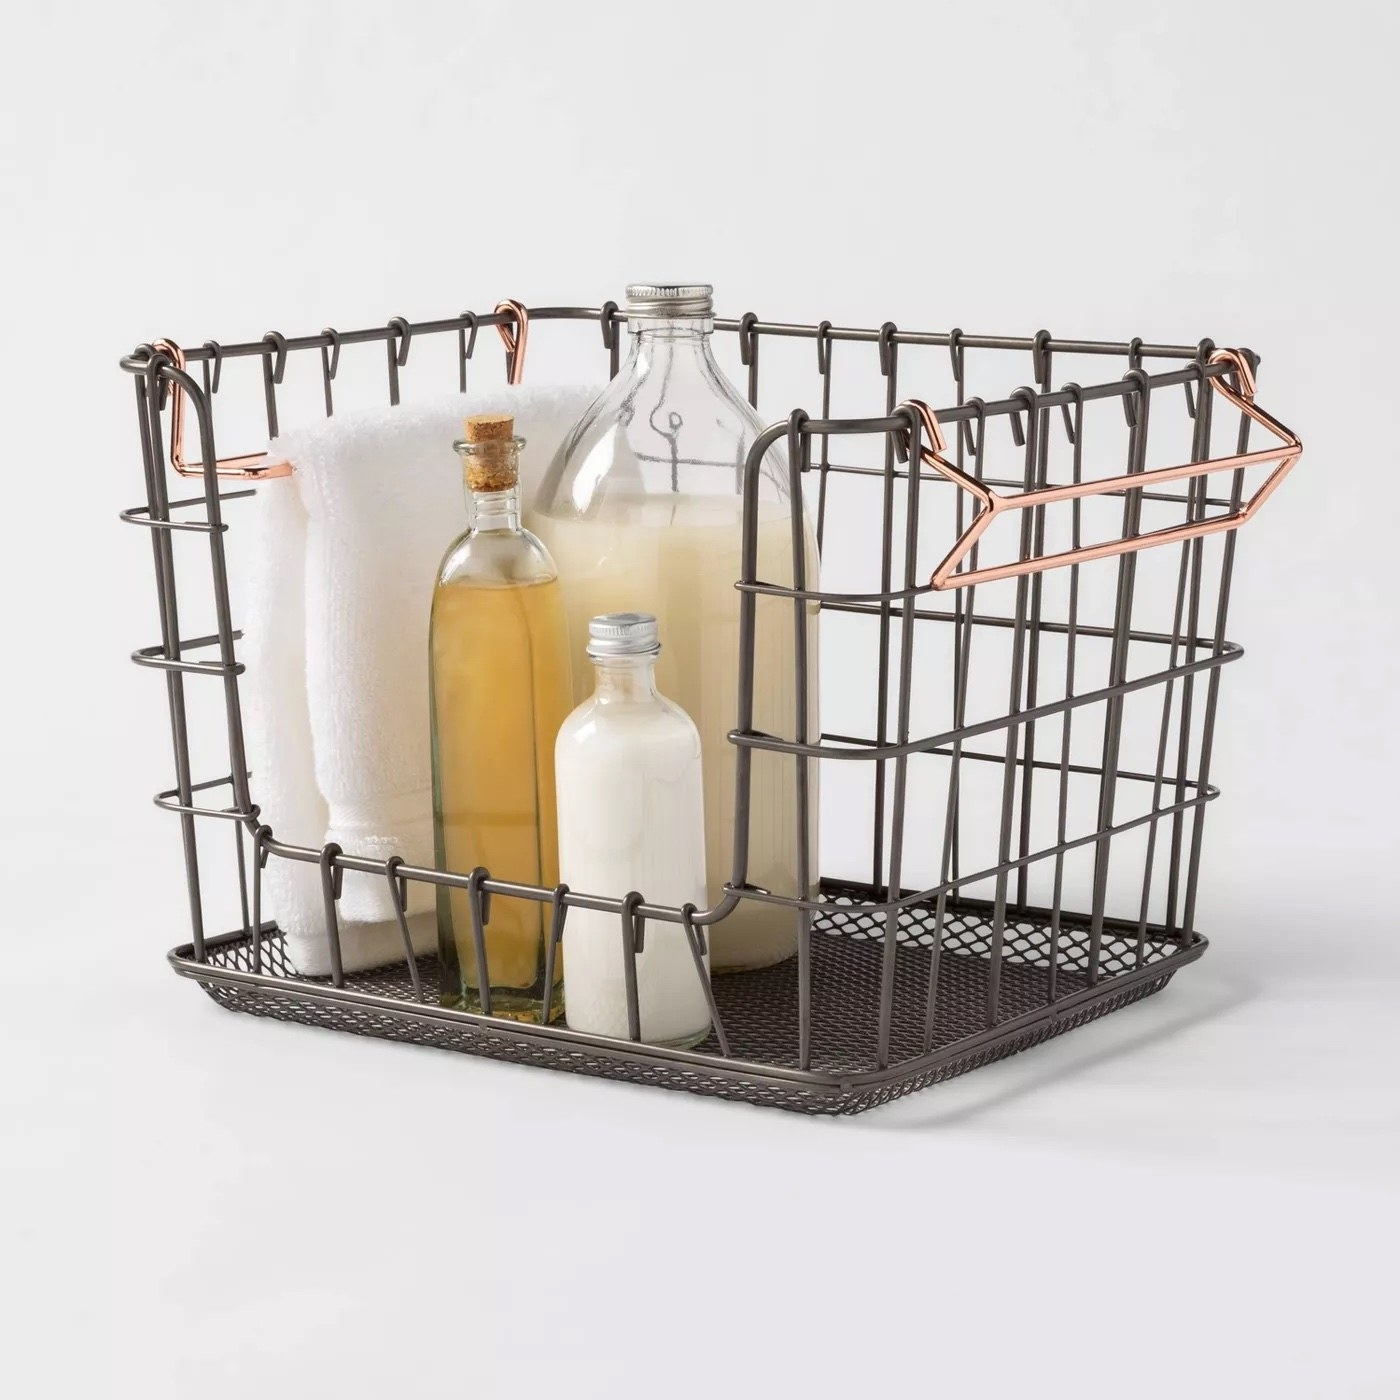 The wire basket with assorted items inside